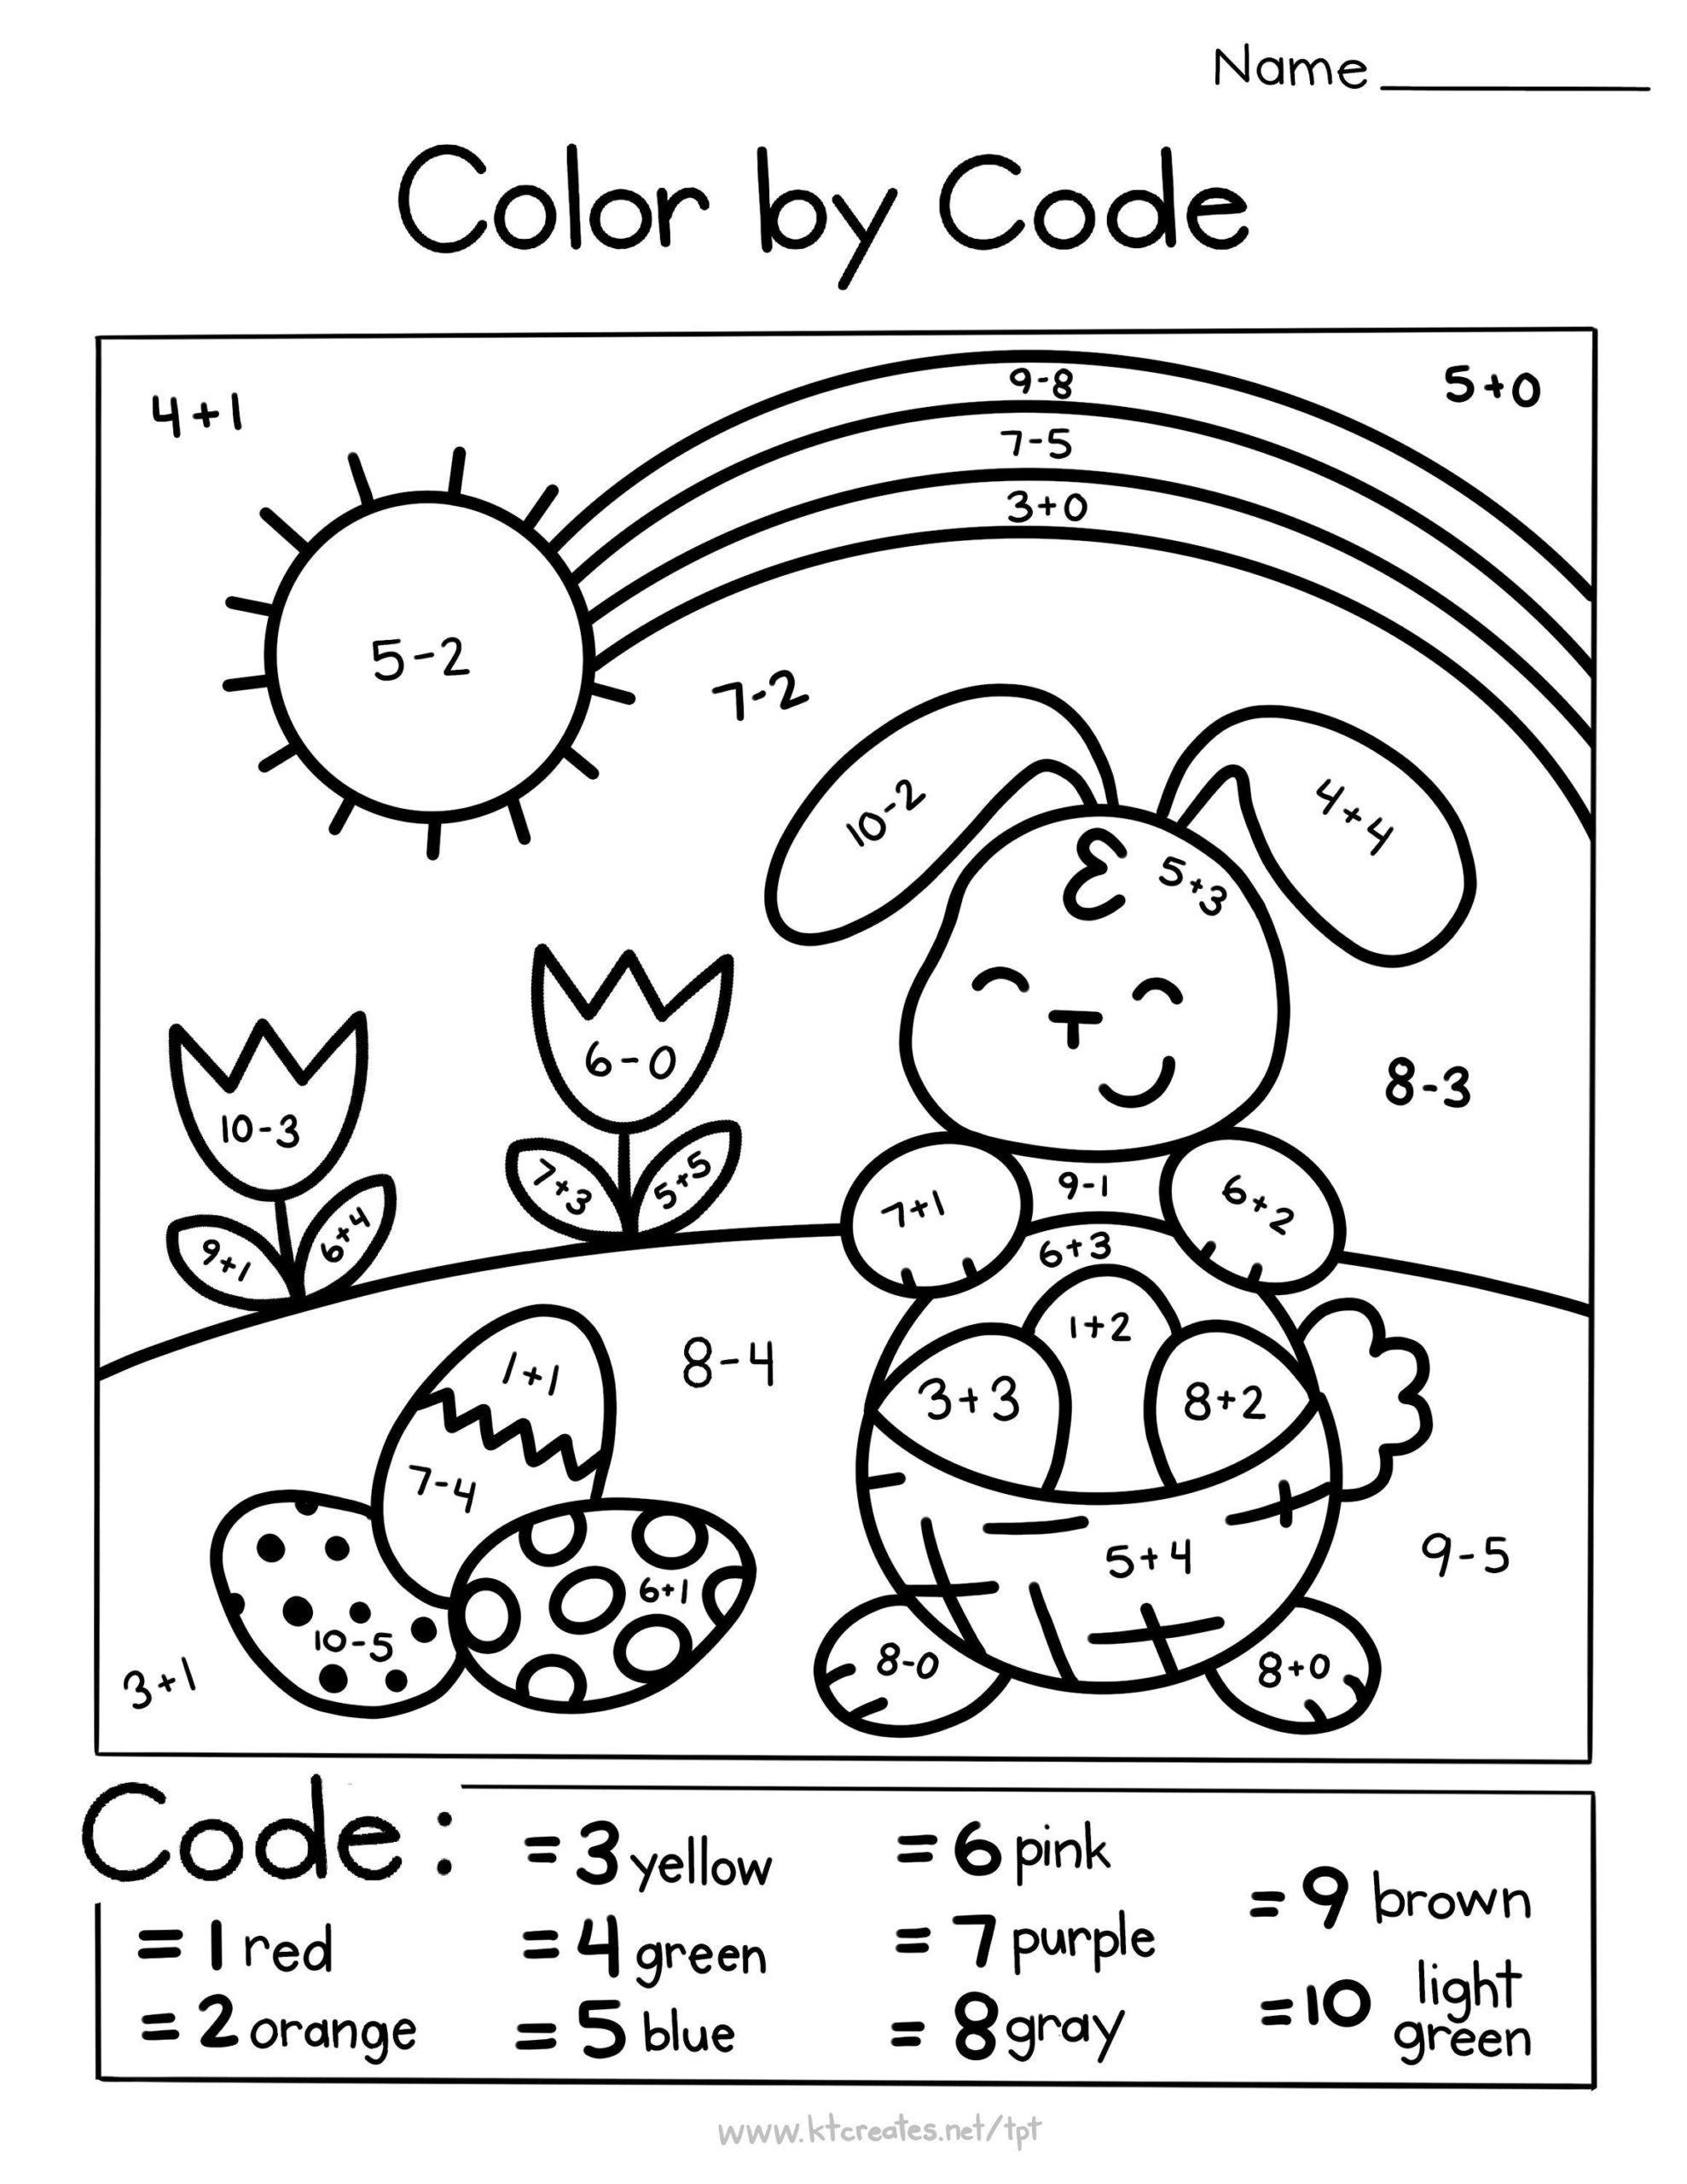 easter maths colouring image inspirations spring color by code simple math coloring il fullxfull e3y1 egg pictures to print printable bunny worksheets sheets sheet